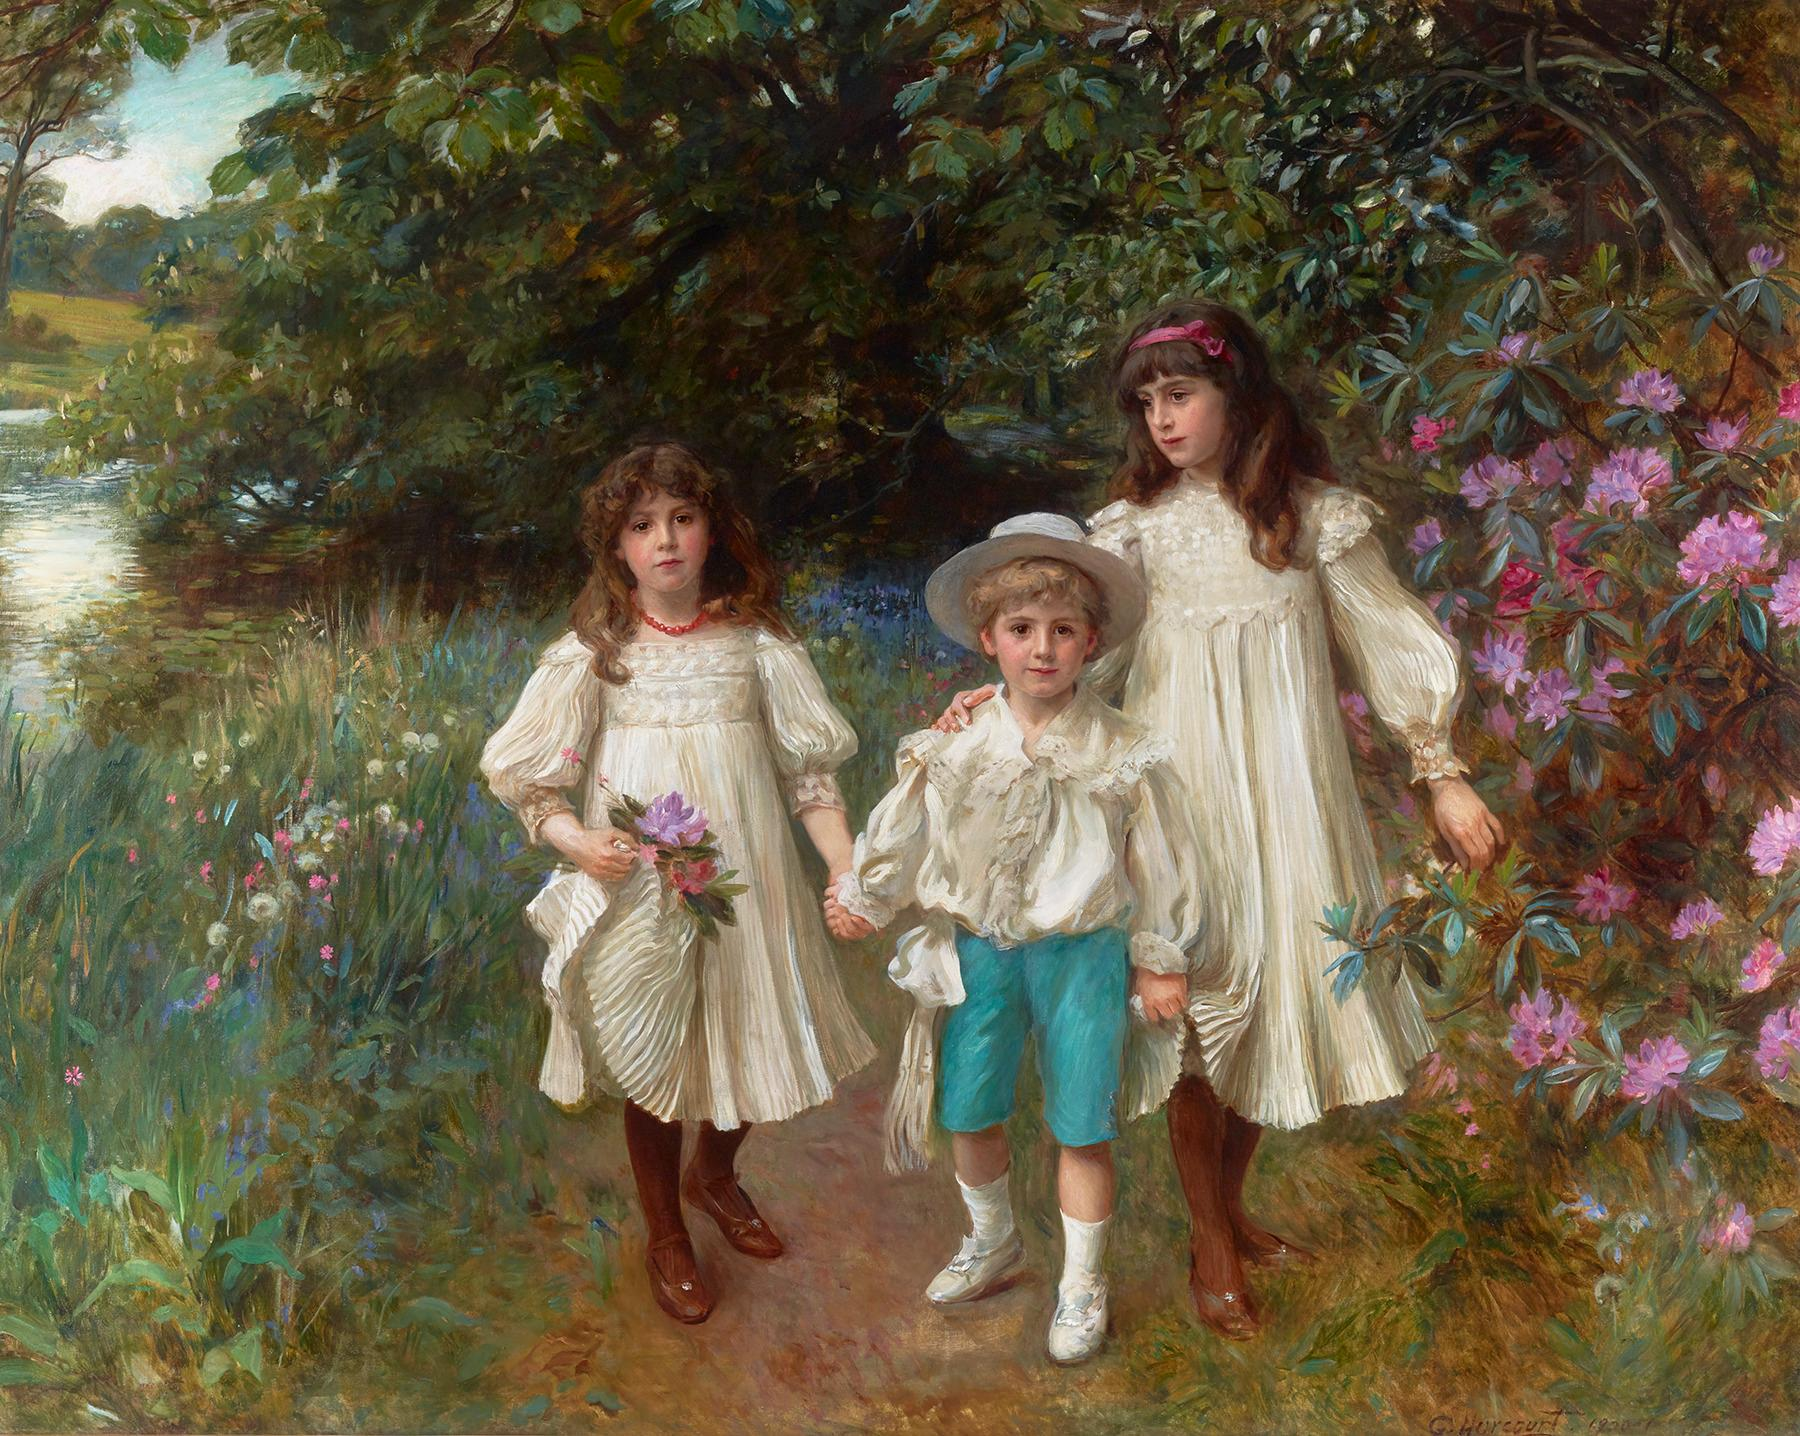 Muriel, Cynthia and George by George Harcourt